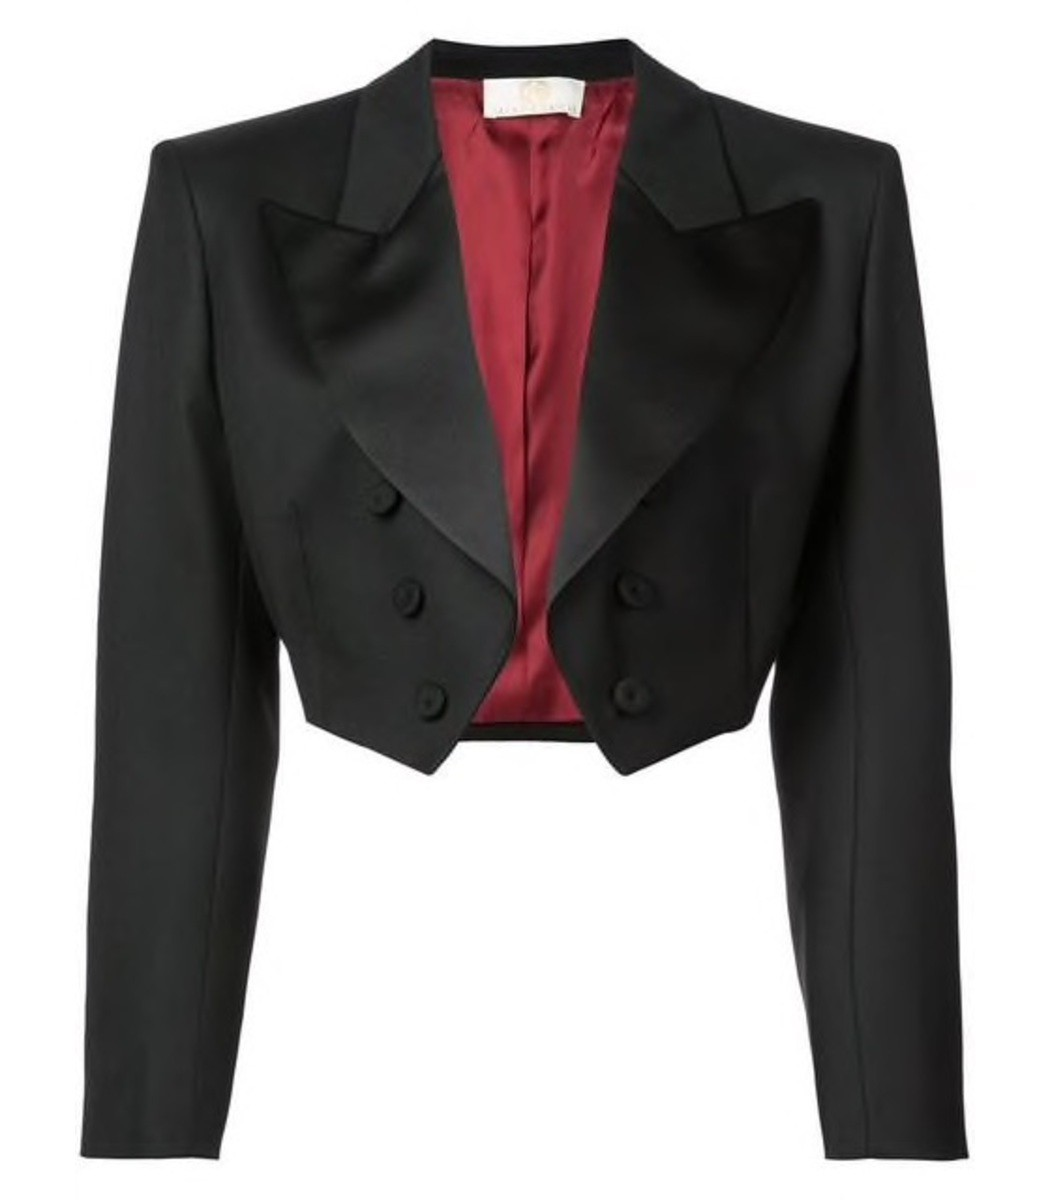 Sara Battaglia Black Cropped Tuxedo Jacket